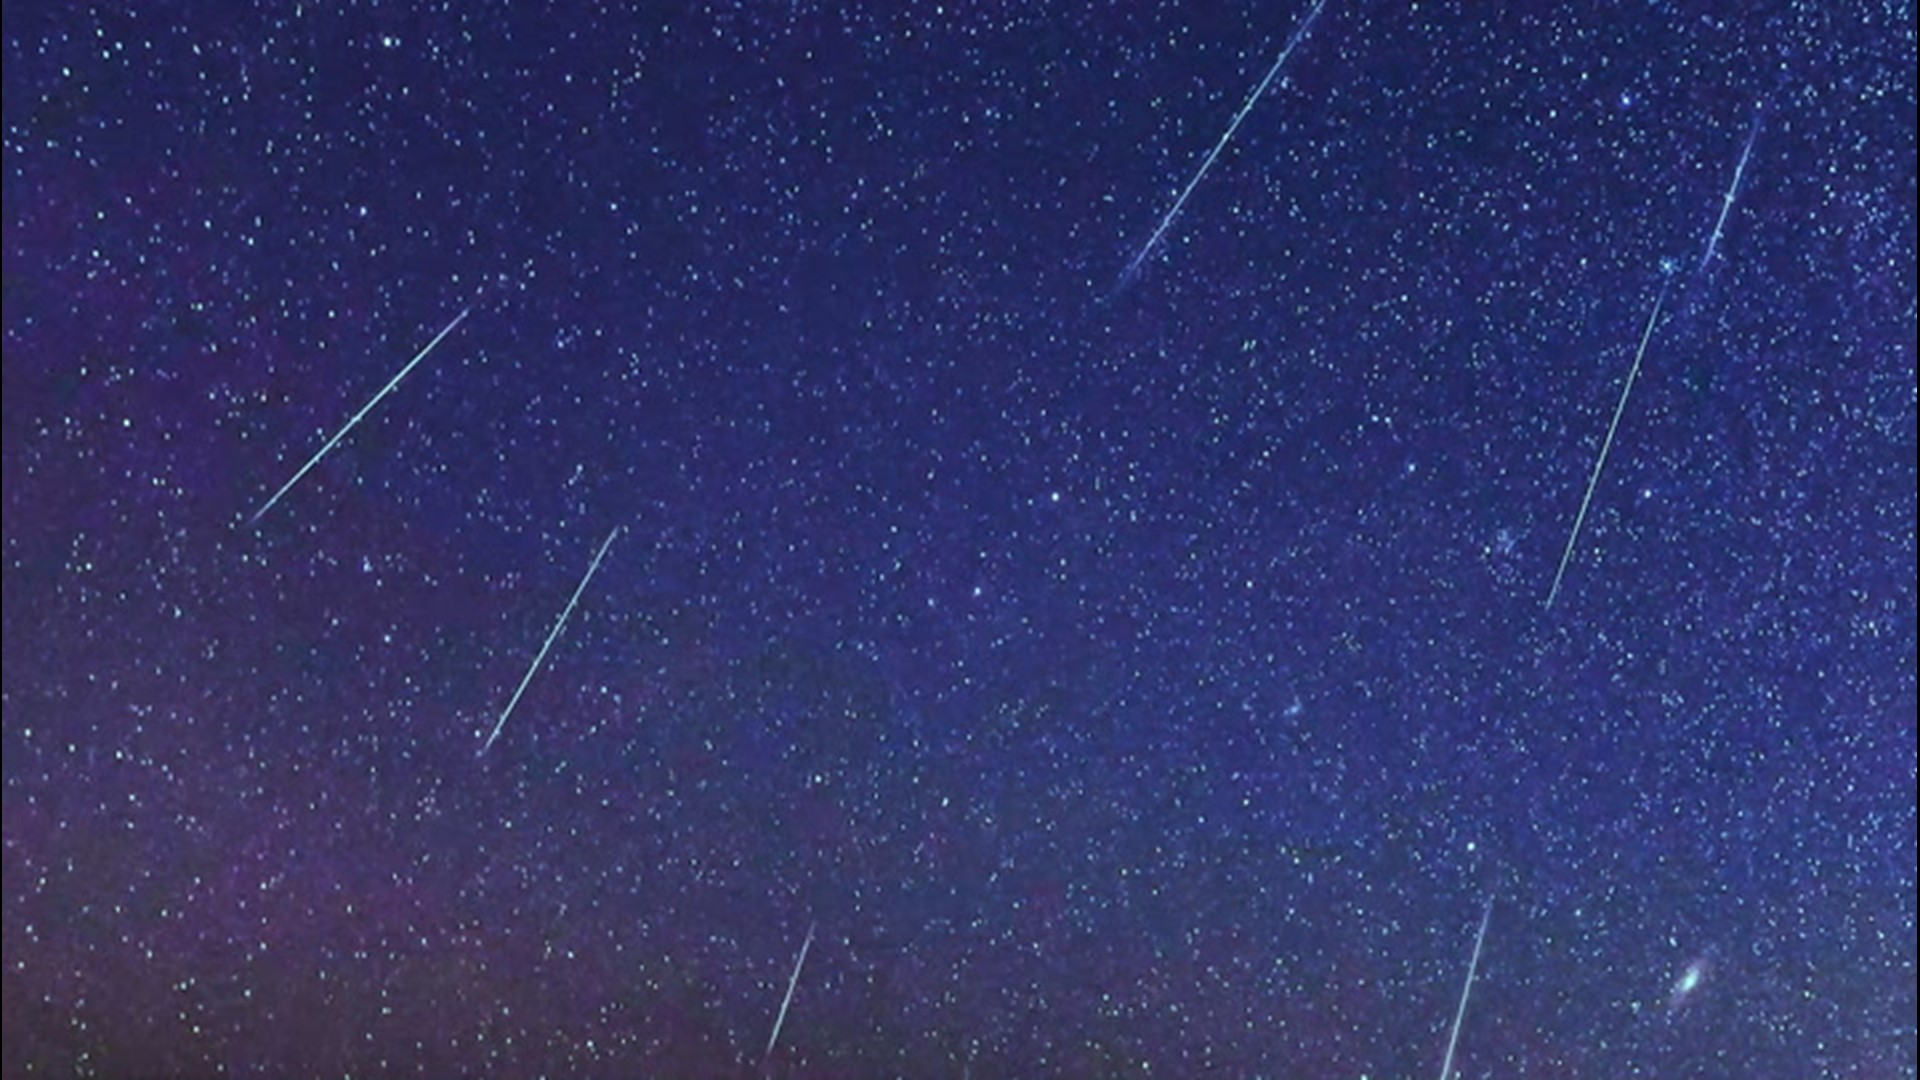 Shooting Stars To Streak Across The Sky Next Week During The Leonid Meteor Shower King5 Com